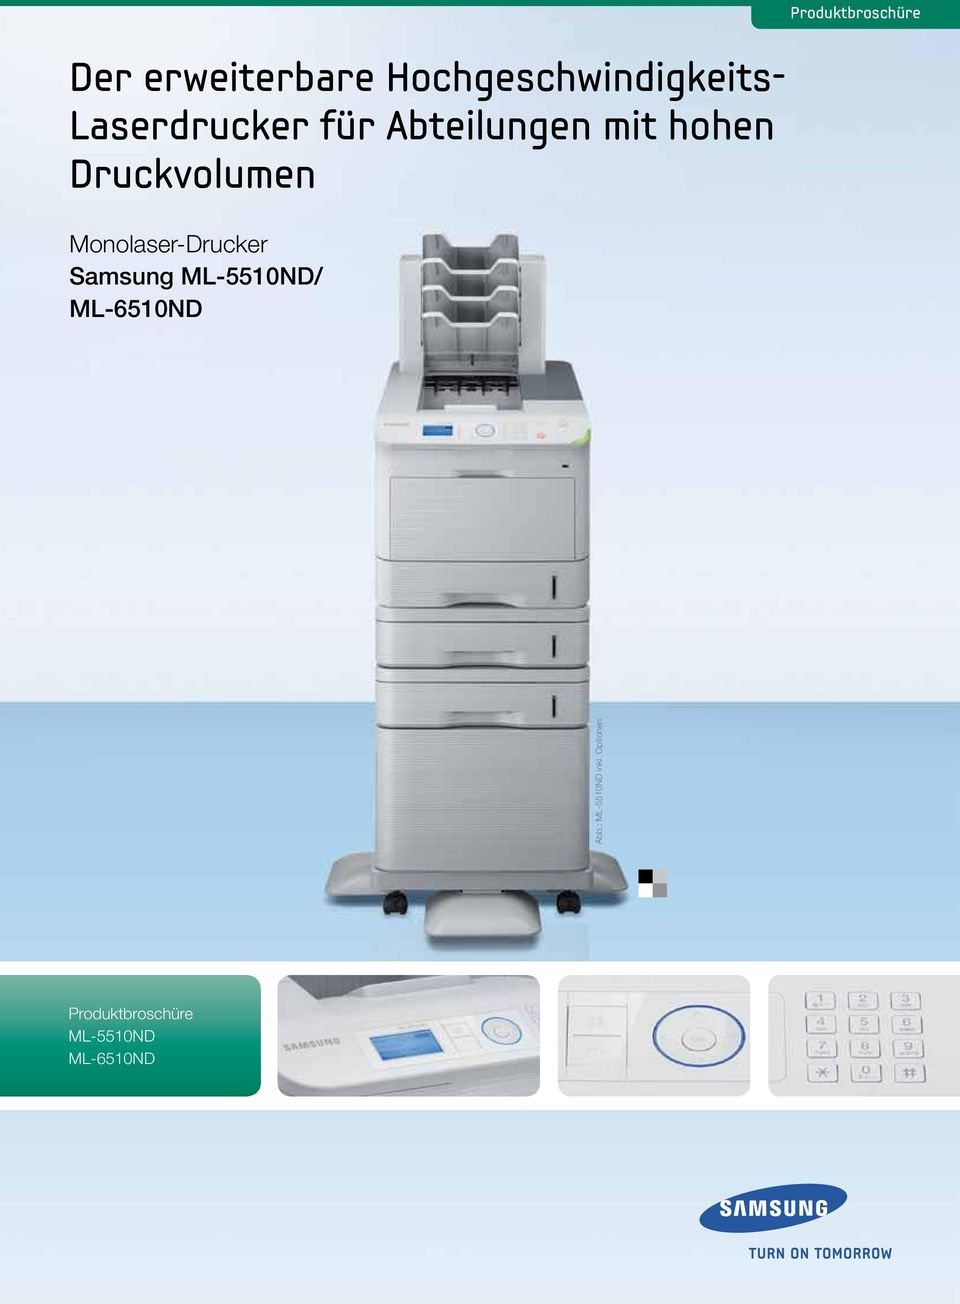 Monolaser-Drucker Samsung ML-5510ND/ ML-6510ND Abb.